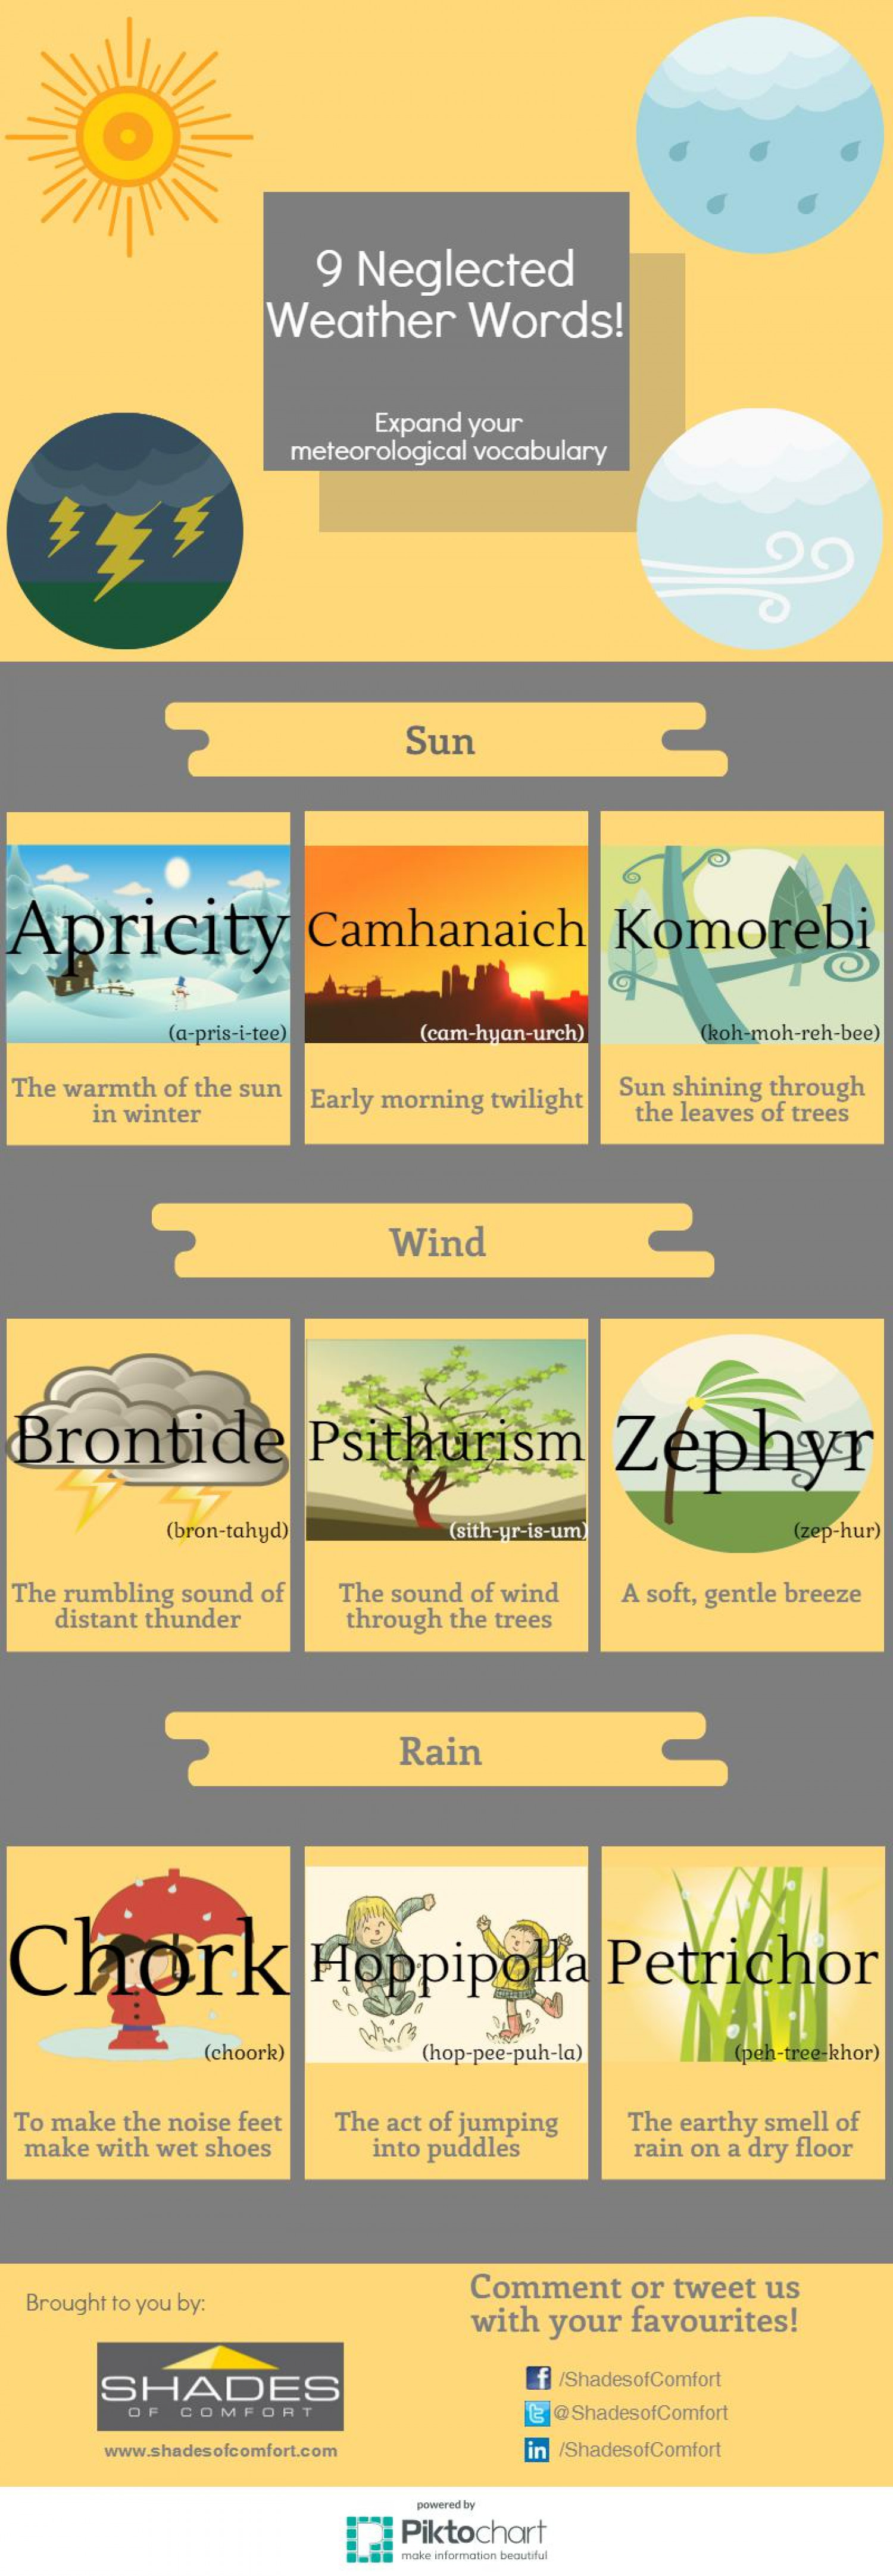 9 Neglected Weather Words! Infographic